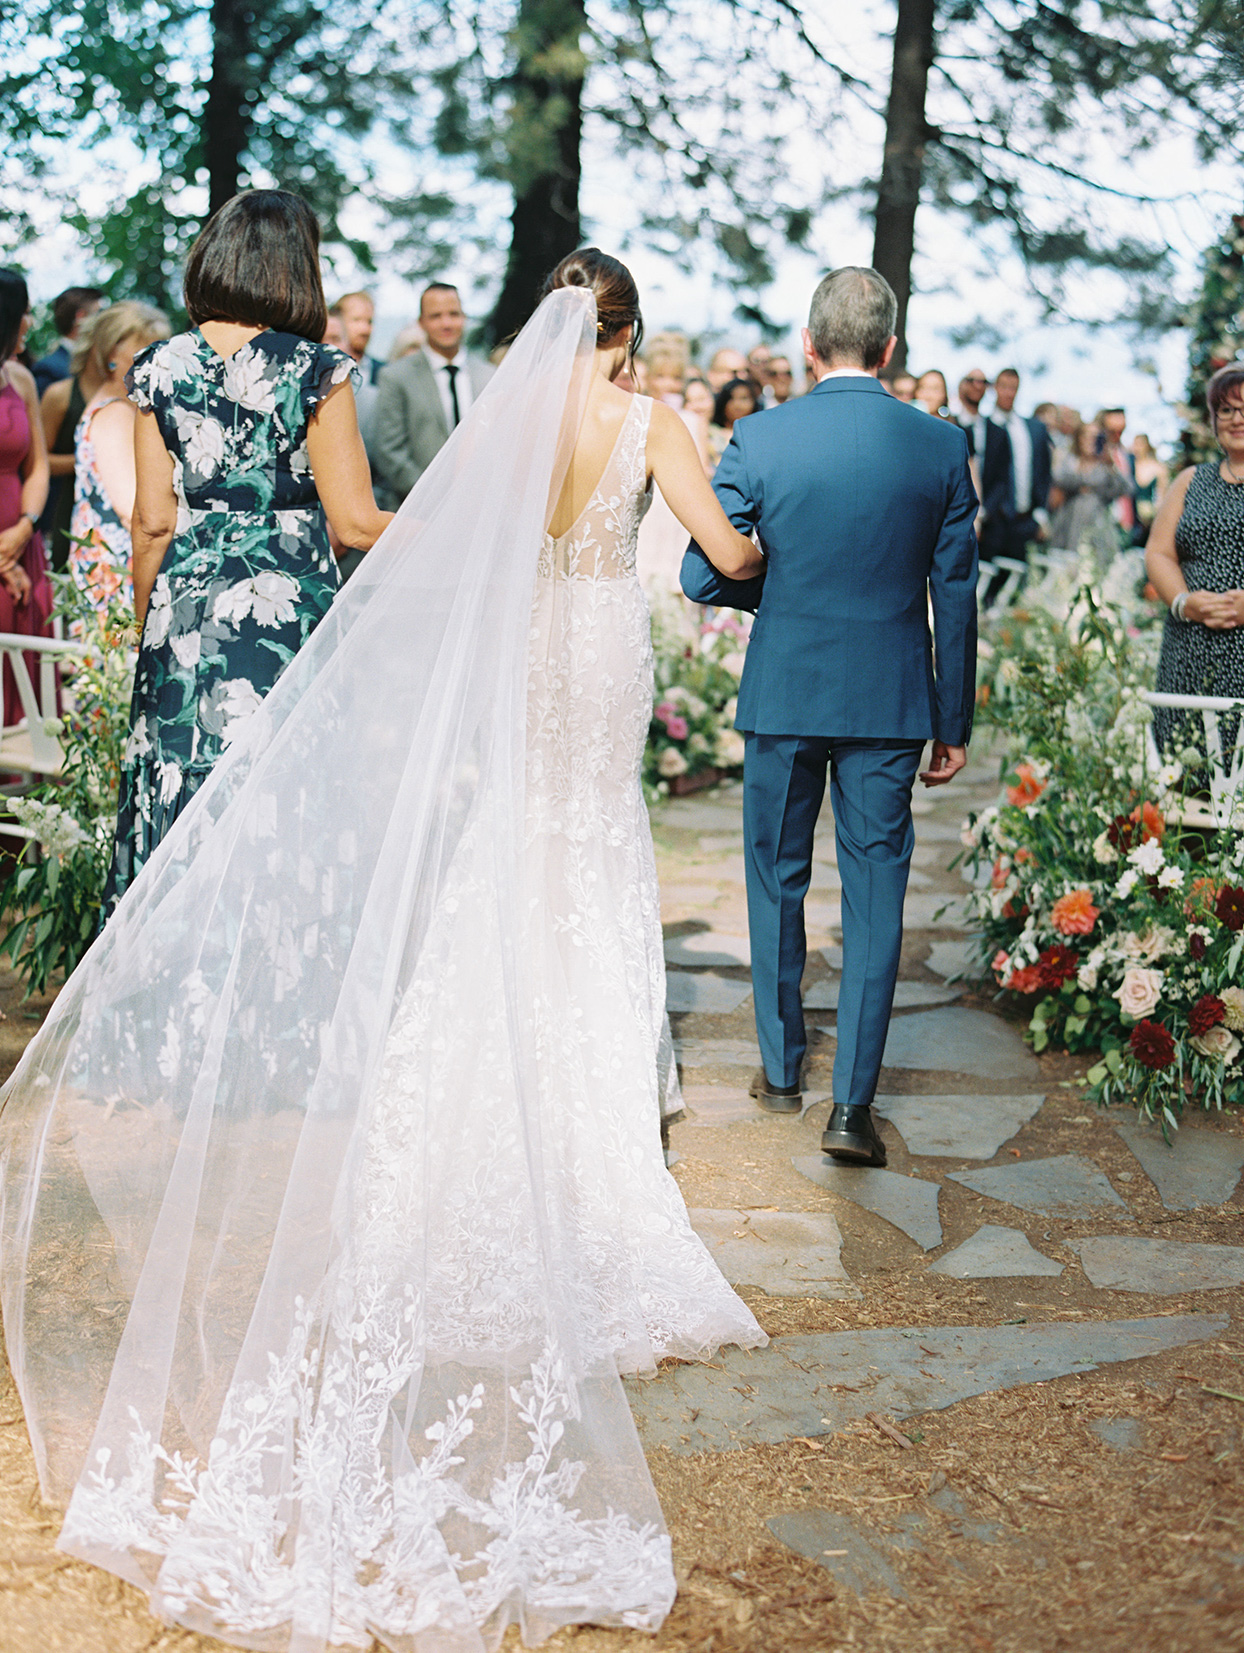 bride and father processing up stone path aisle at wedding ceremony